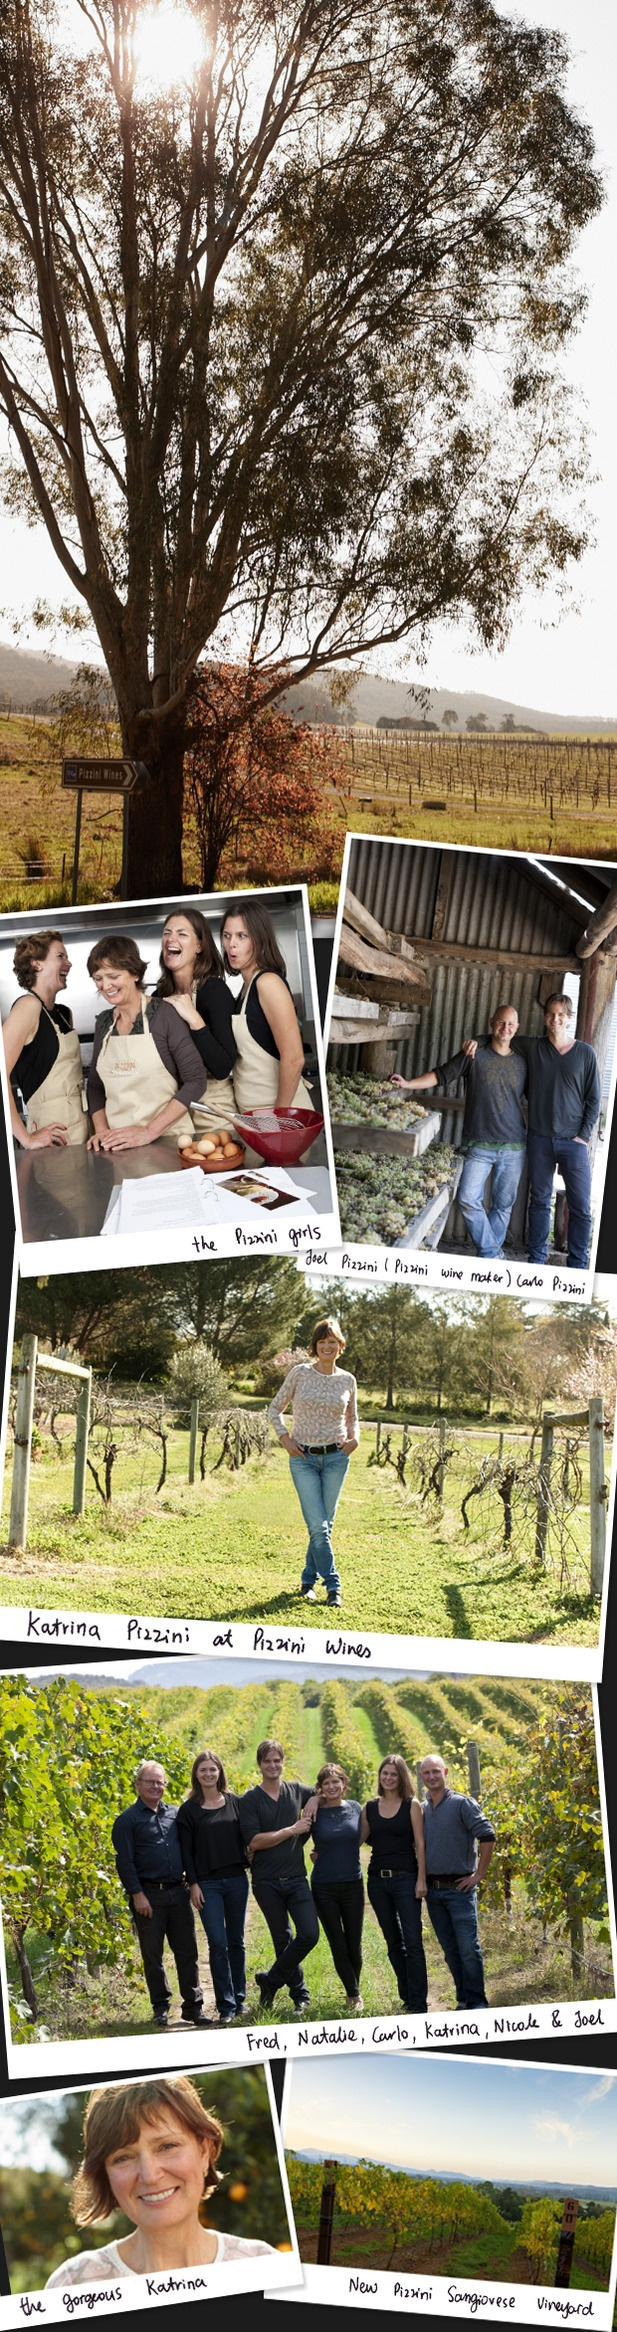 Katrina Pizzini - wine maker chef ''You don't just marry an Italian, you marry the whole family.'' To read full interview go to www.anaffairwithitaly.com